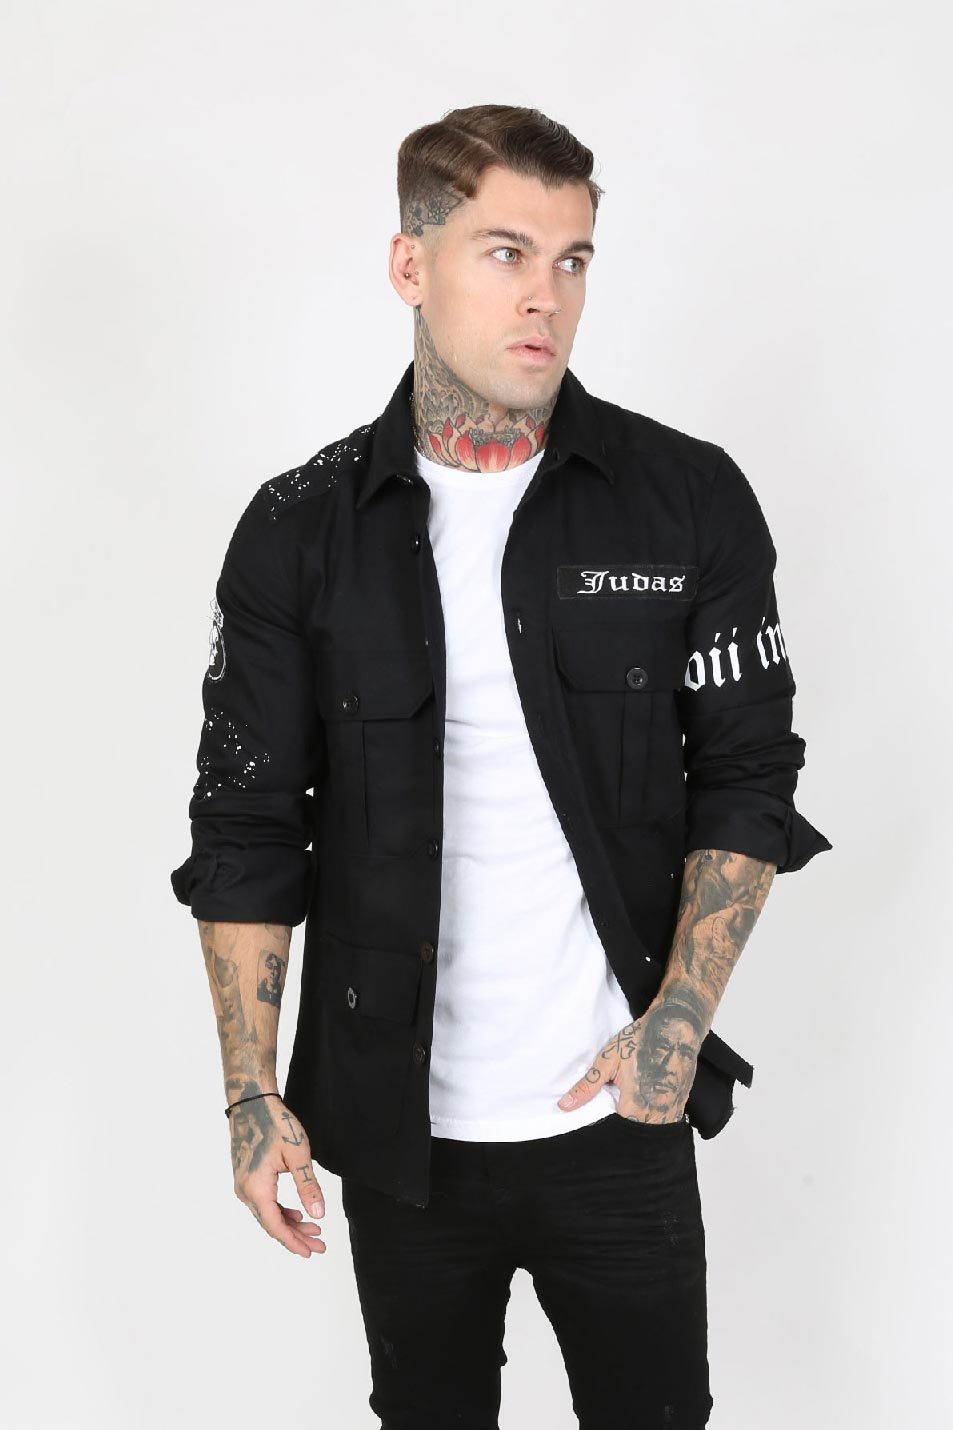 Judas Sinned Army Paint Splatter Logo Men's Overshirt - Black - Judas Sinned Clothing